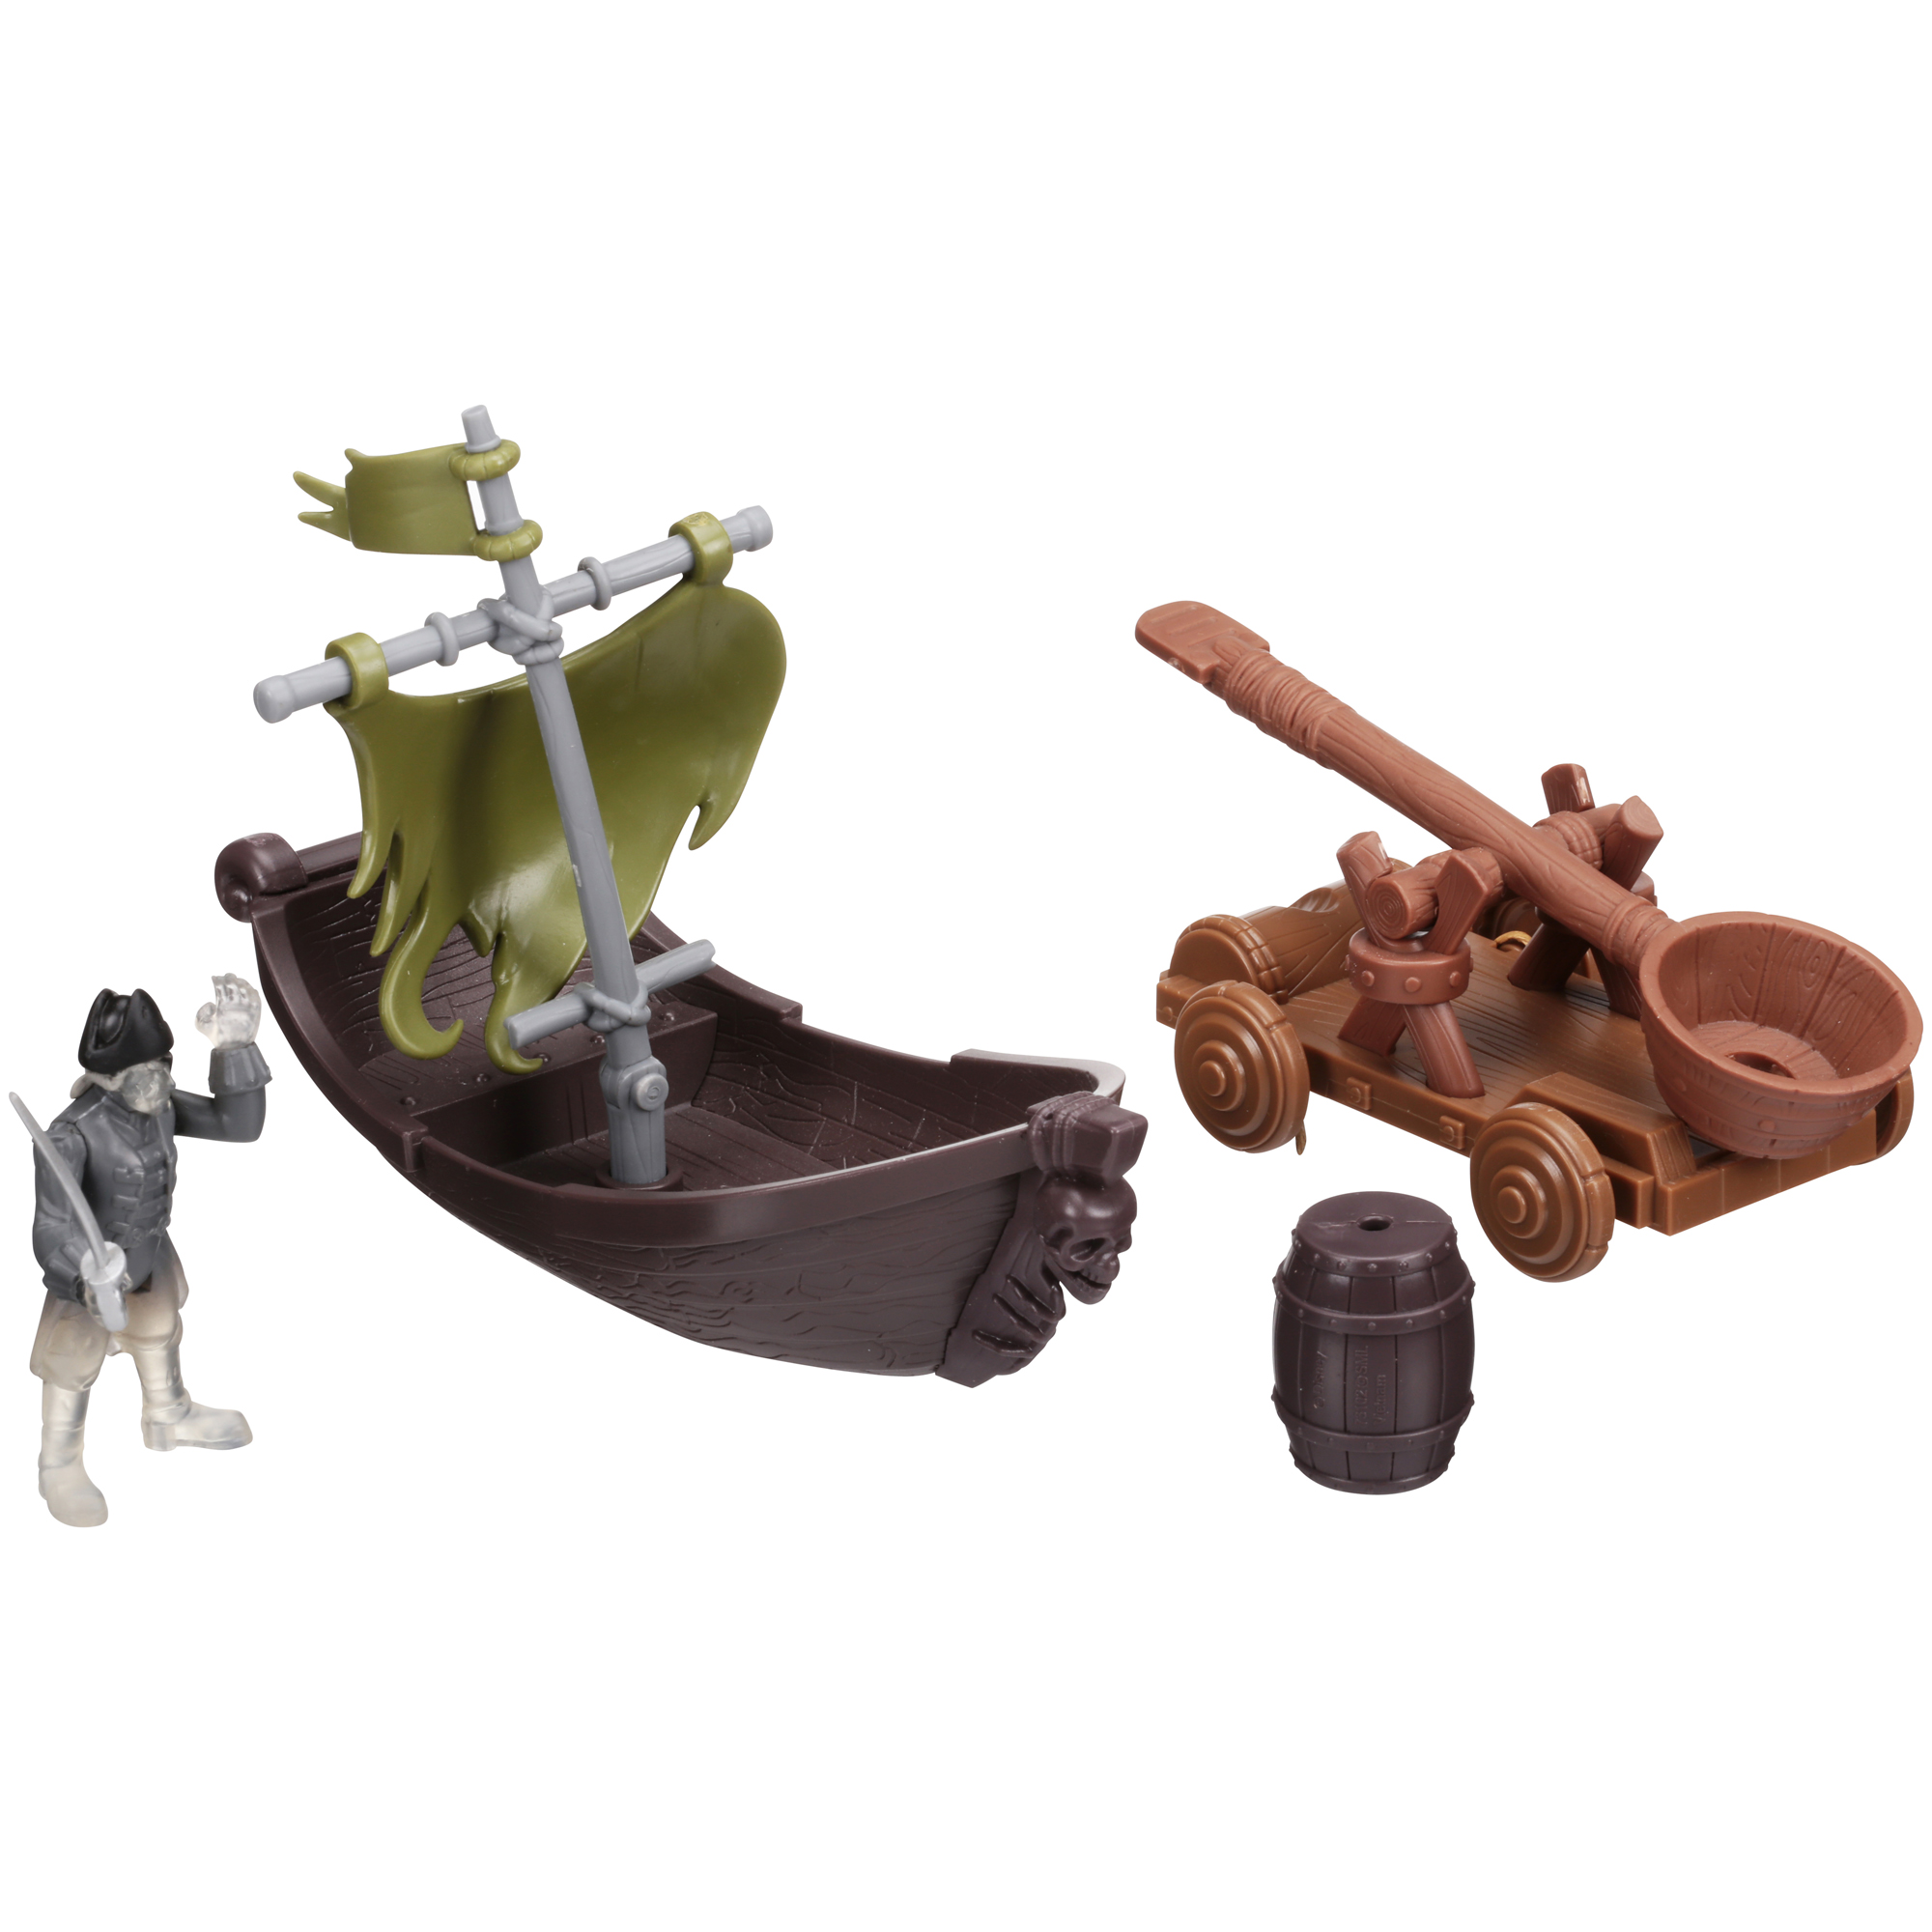 Disney Pirates of the Carribean Dead Men Tell No Tales Ghost Pirate Hunter Playset 4 pc... by Spin Master Ltd.